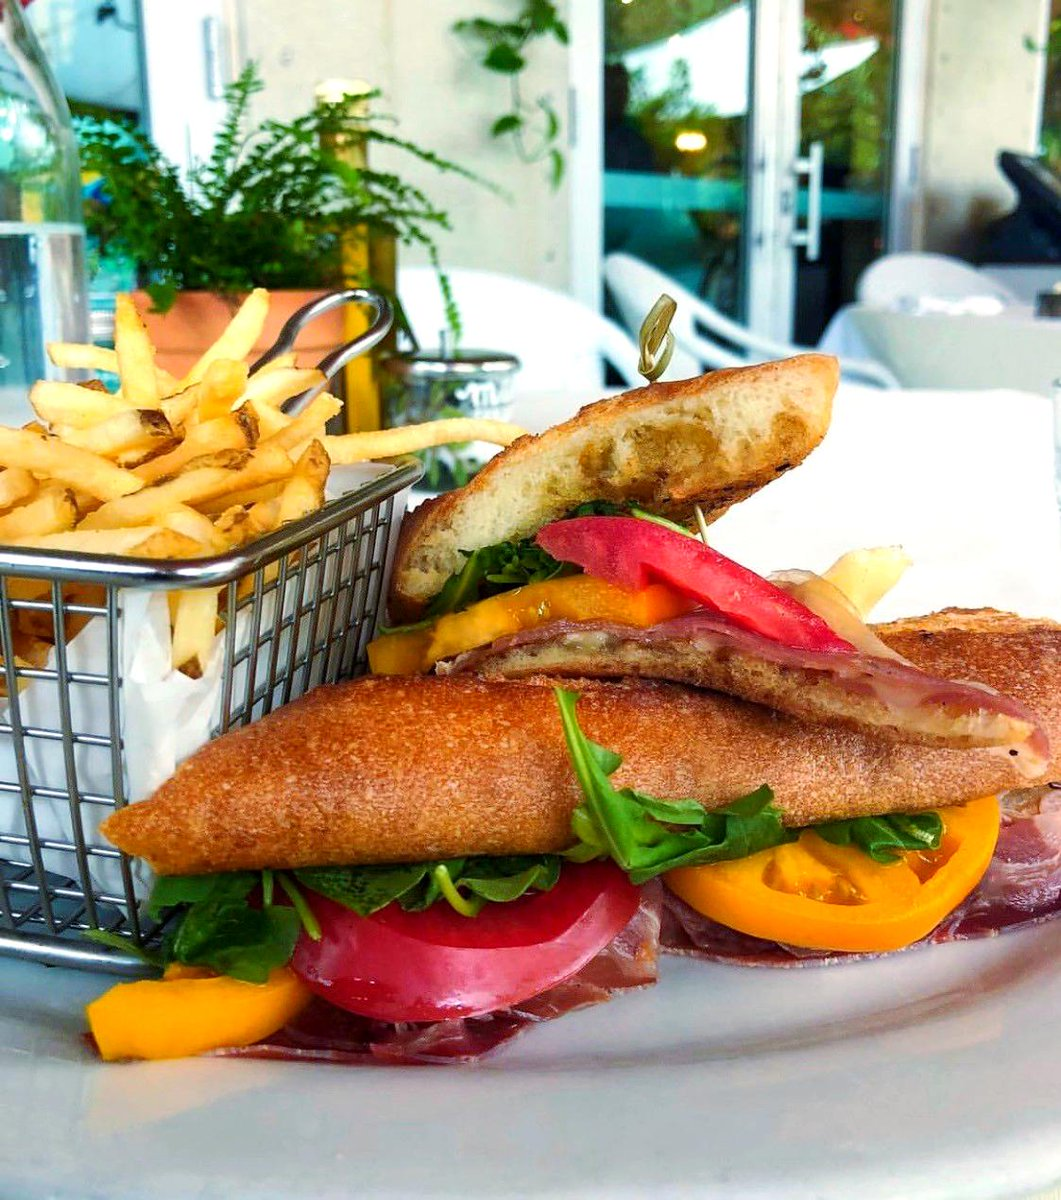 Hungry? Join us for lunch and order our mouthwatering  Prosciutto and Brie Cheese Sandwich!🤤 #Lunch #PeacockGardenBistro #Miami #CoralGables  #CoconutGrove